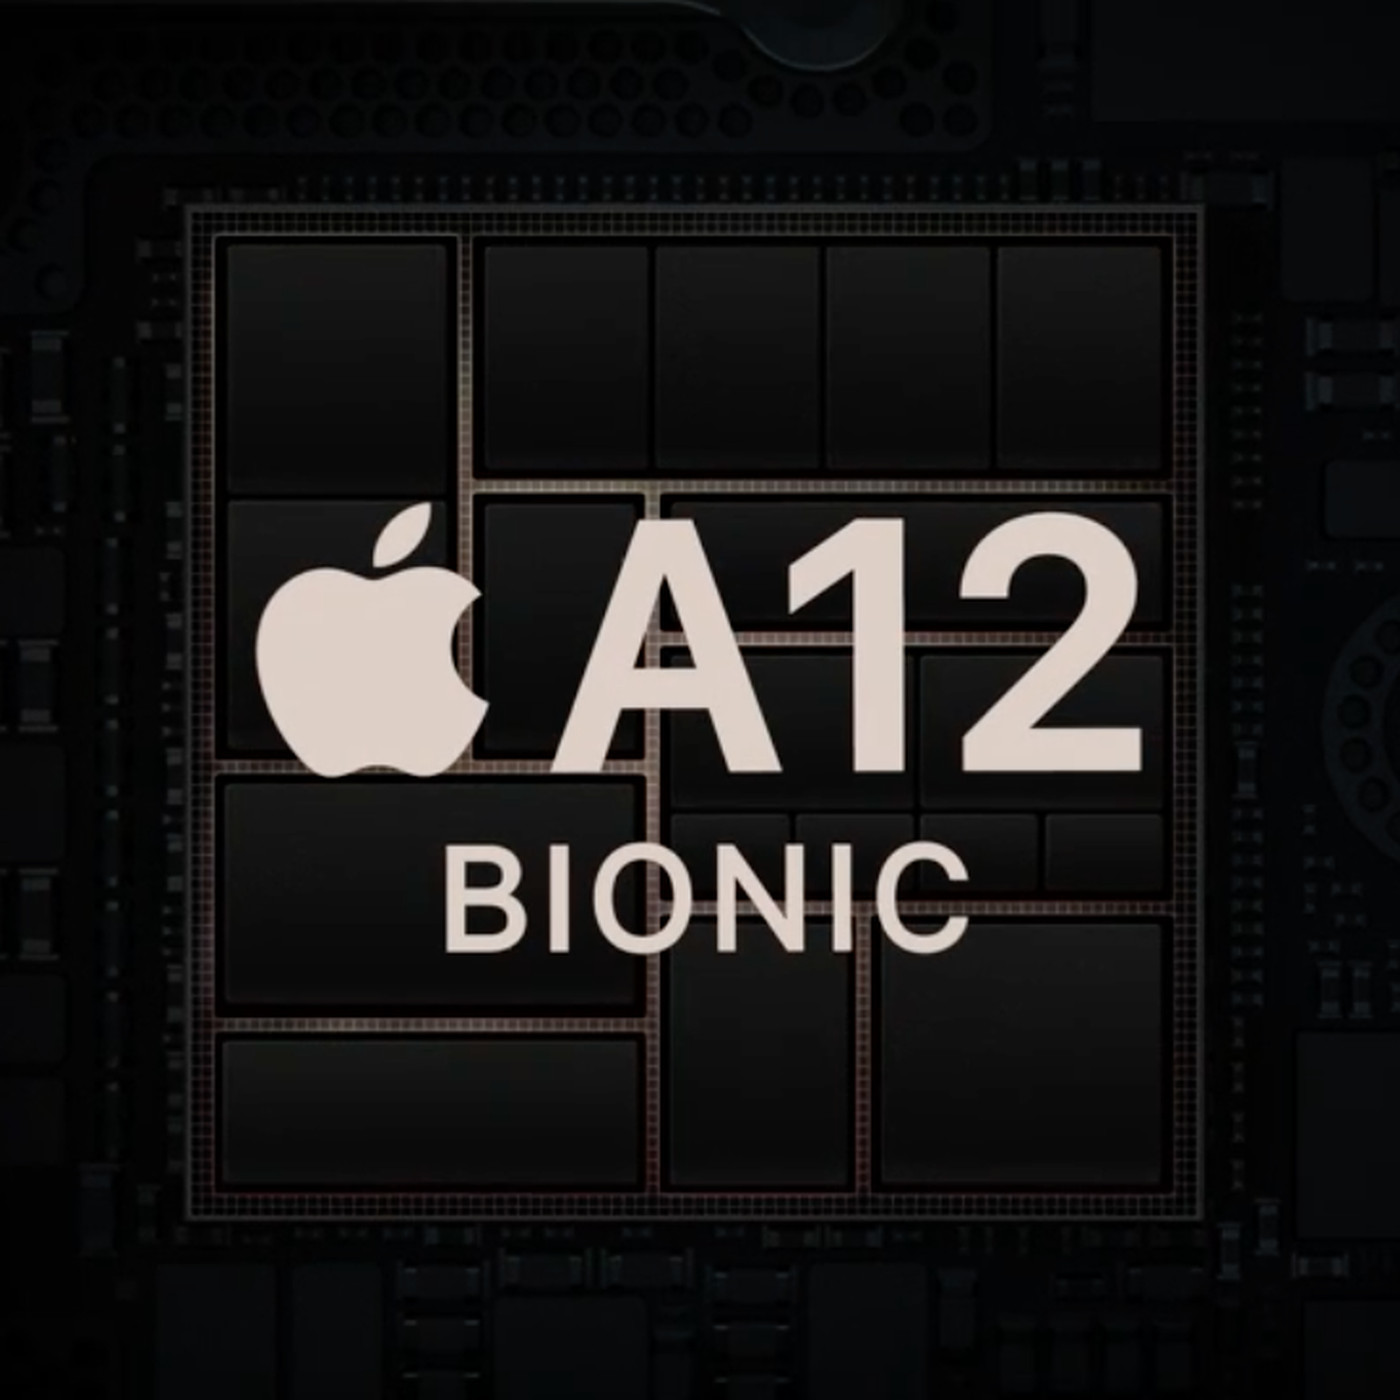 Apple Calls A12 Bionic Chip The Smartest And Most Powerful Chip Ever In A Smartphone The Verge